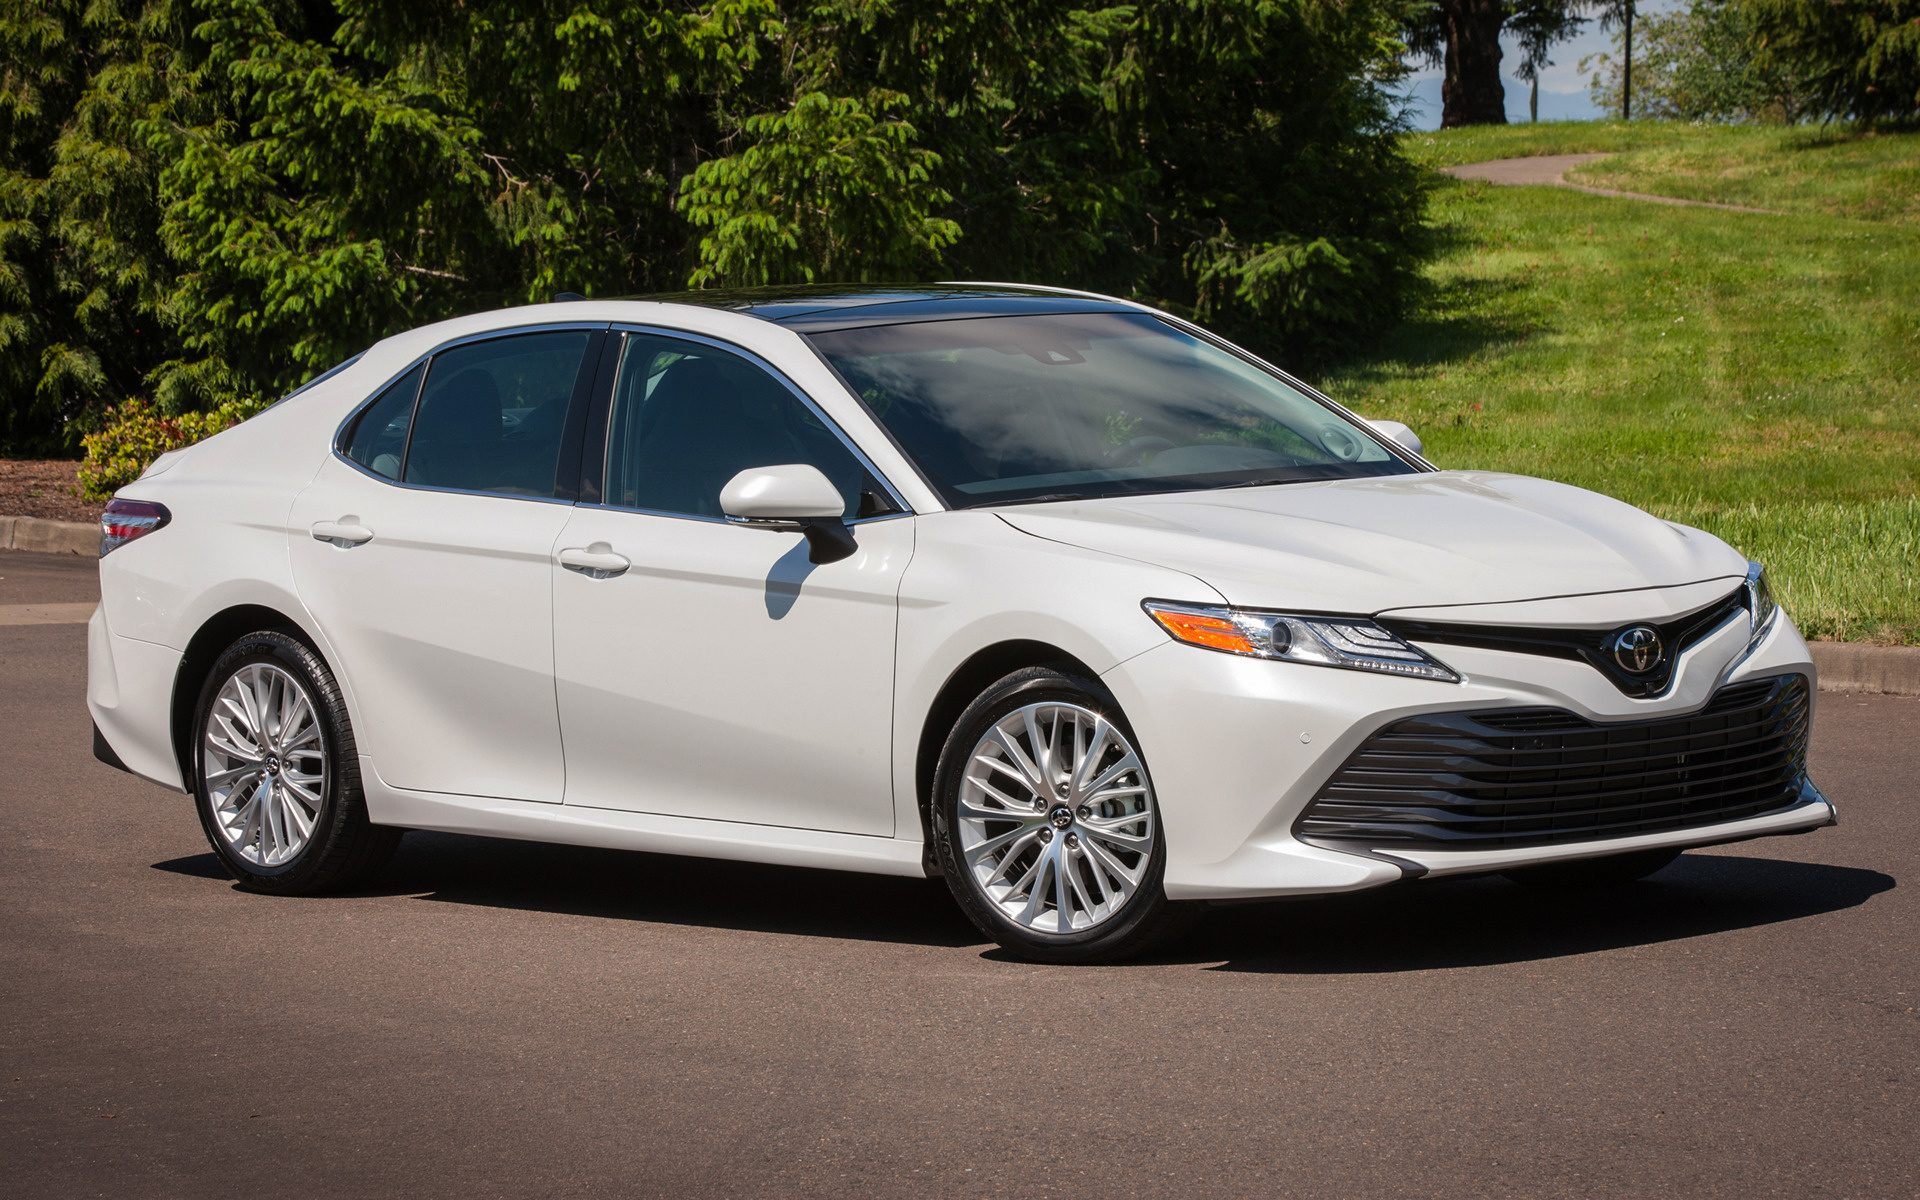 Toyota Camry Xle Car Wallpaper